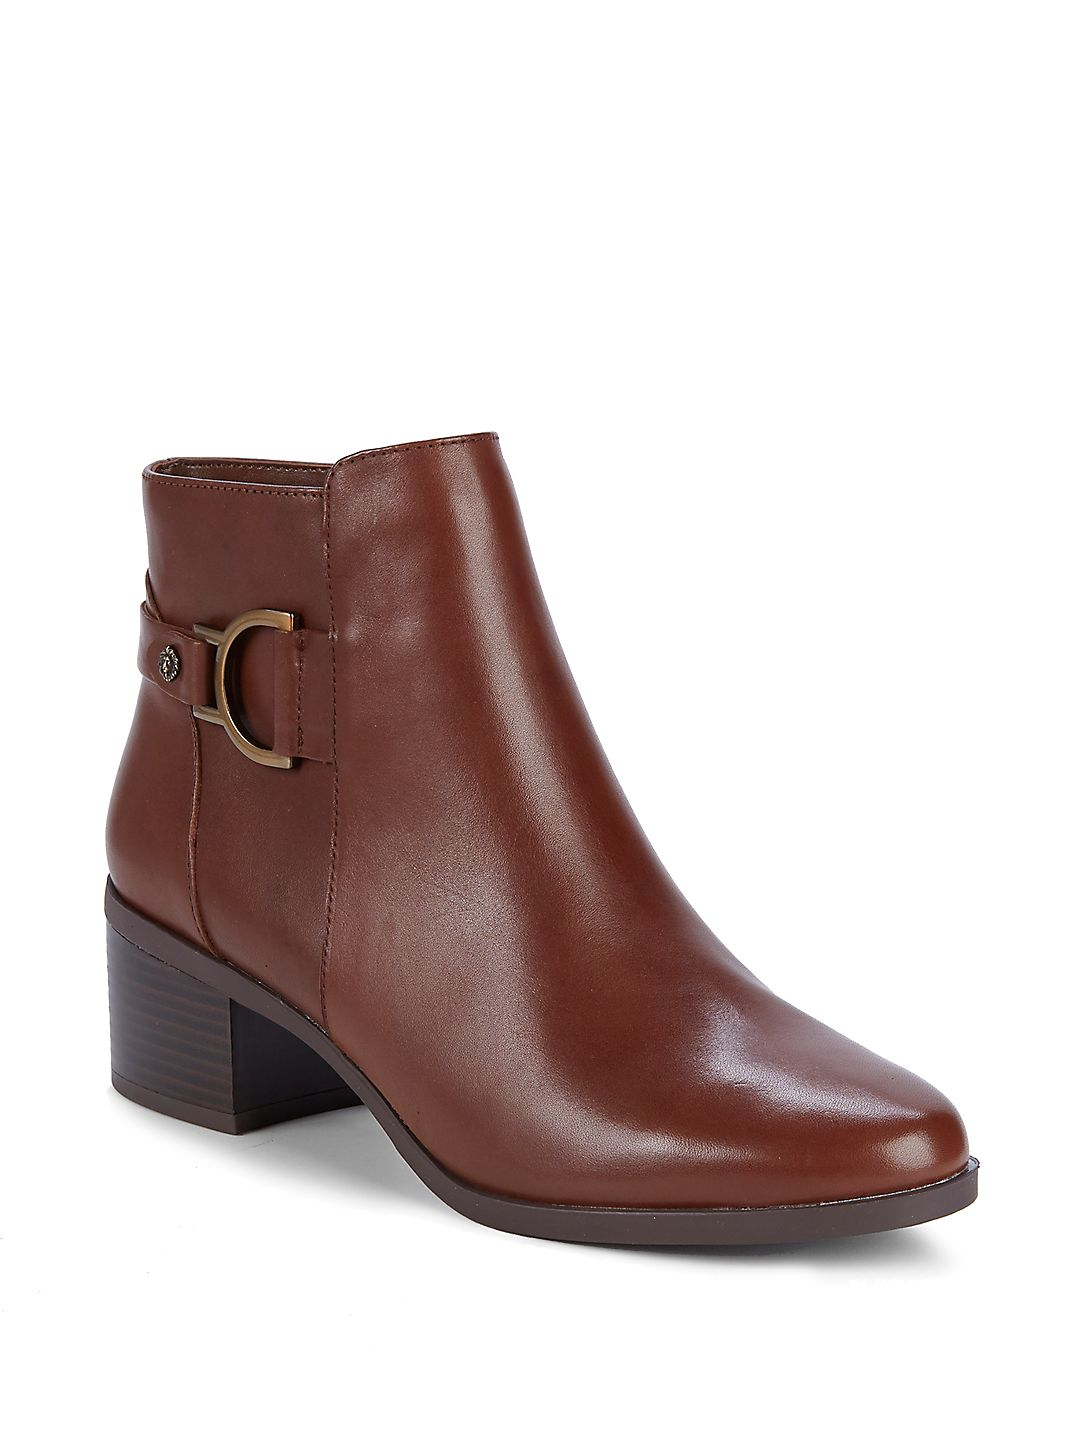 Jaysie Block Heel Booties